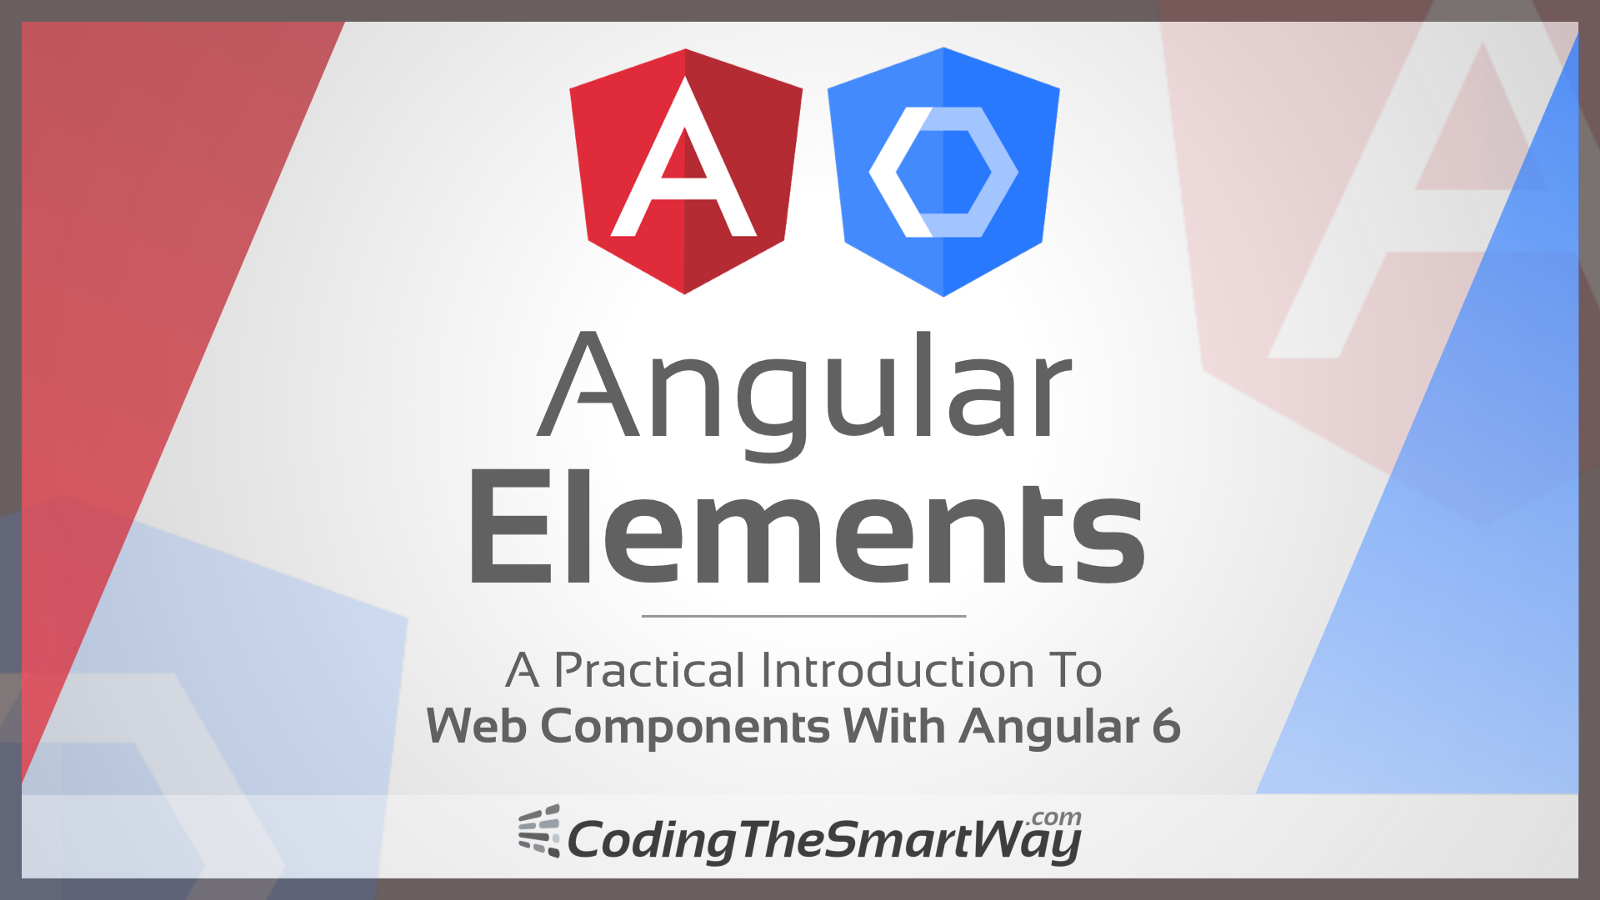 Angular Elements—A Practical Introduction To Web Components With Angular 6